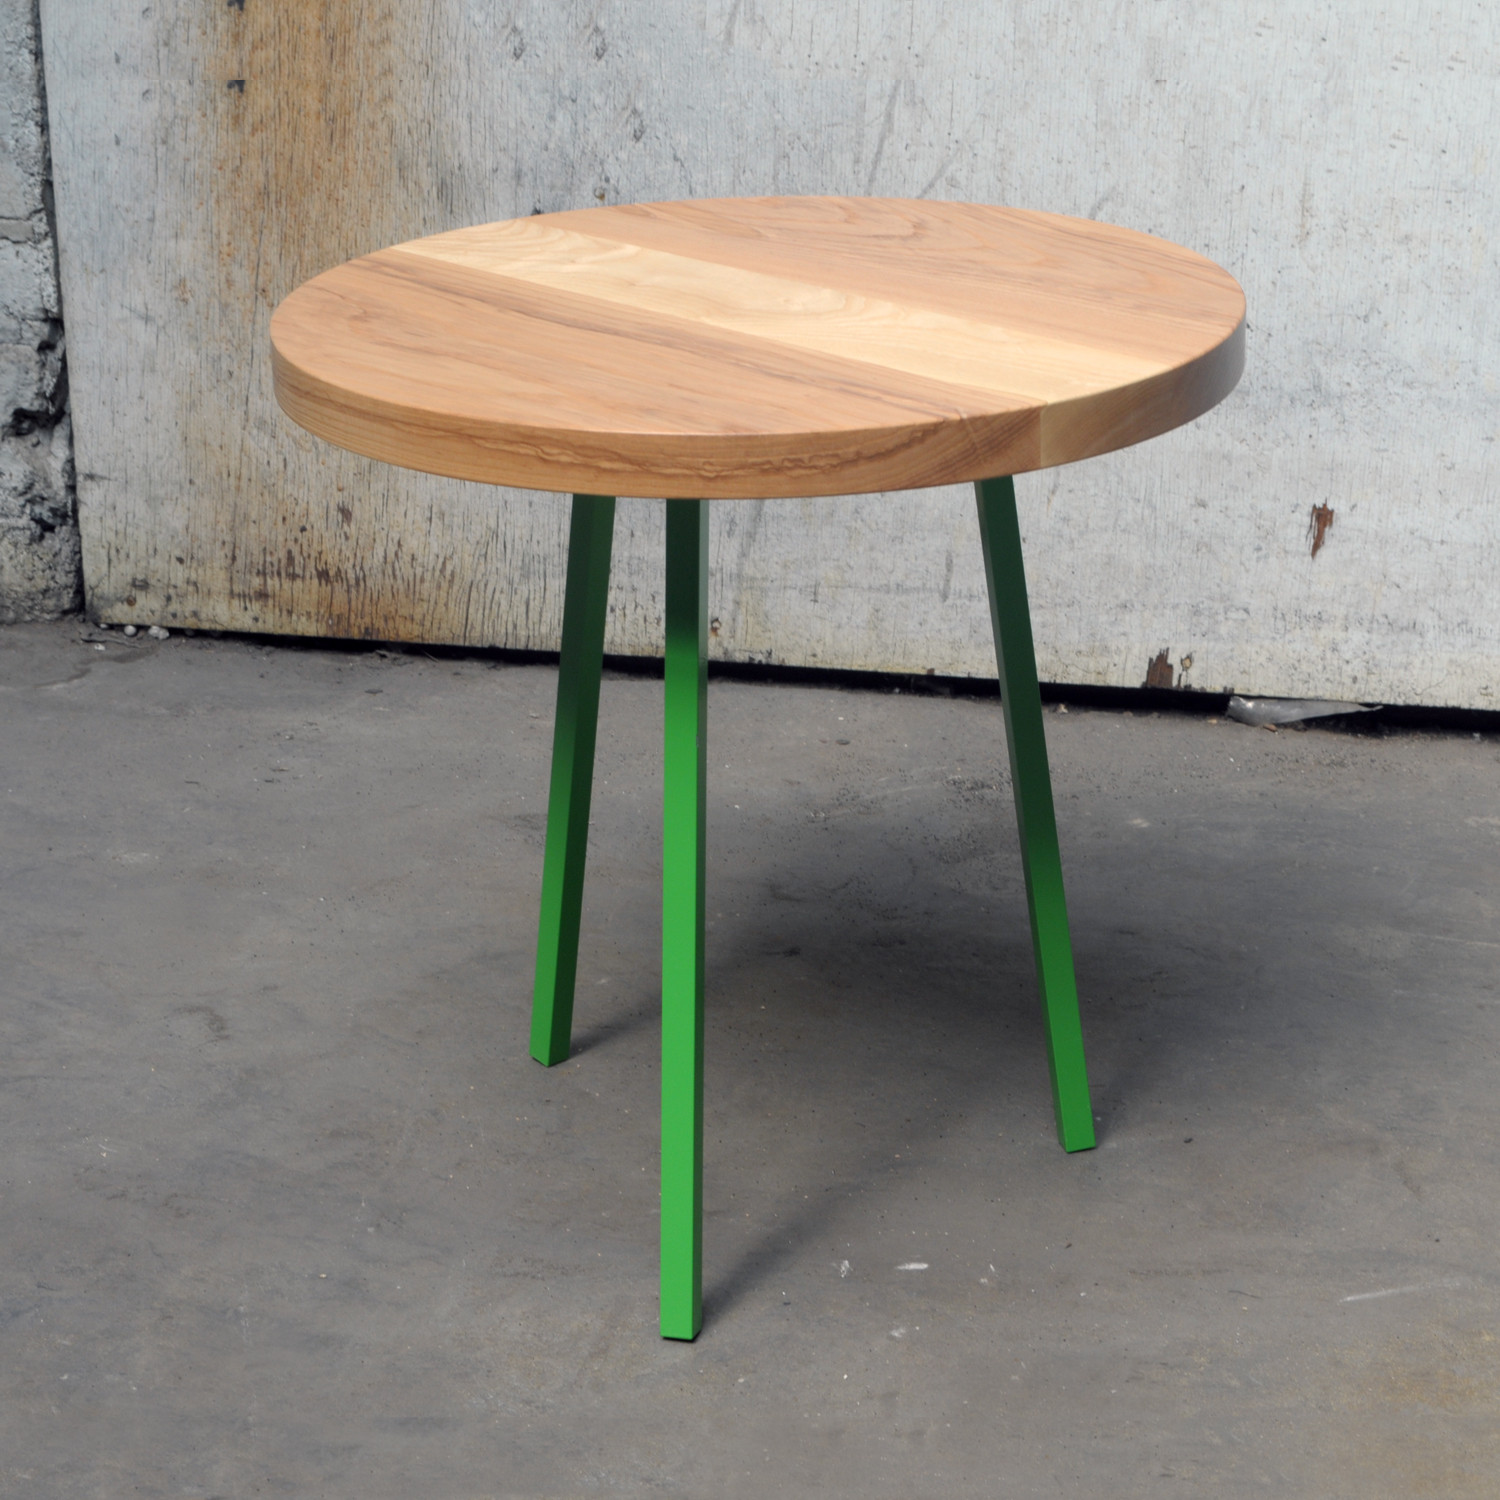 Superior Little Round Table (Walnut Top + White Legs)